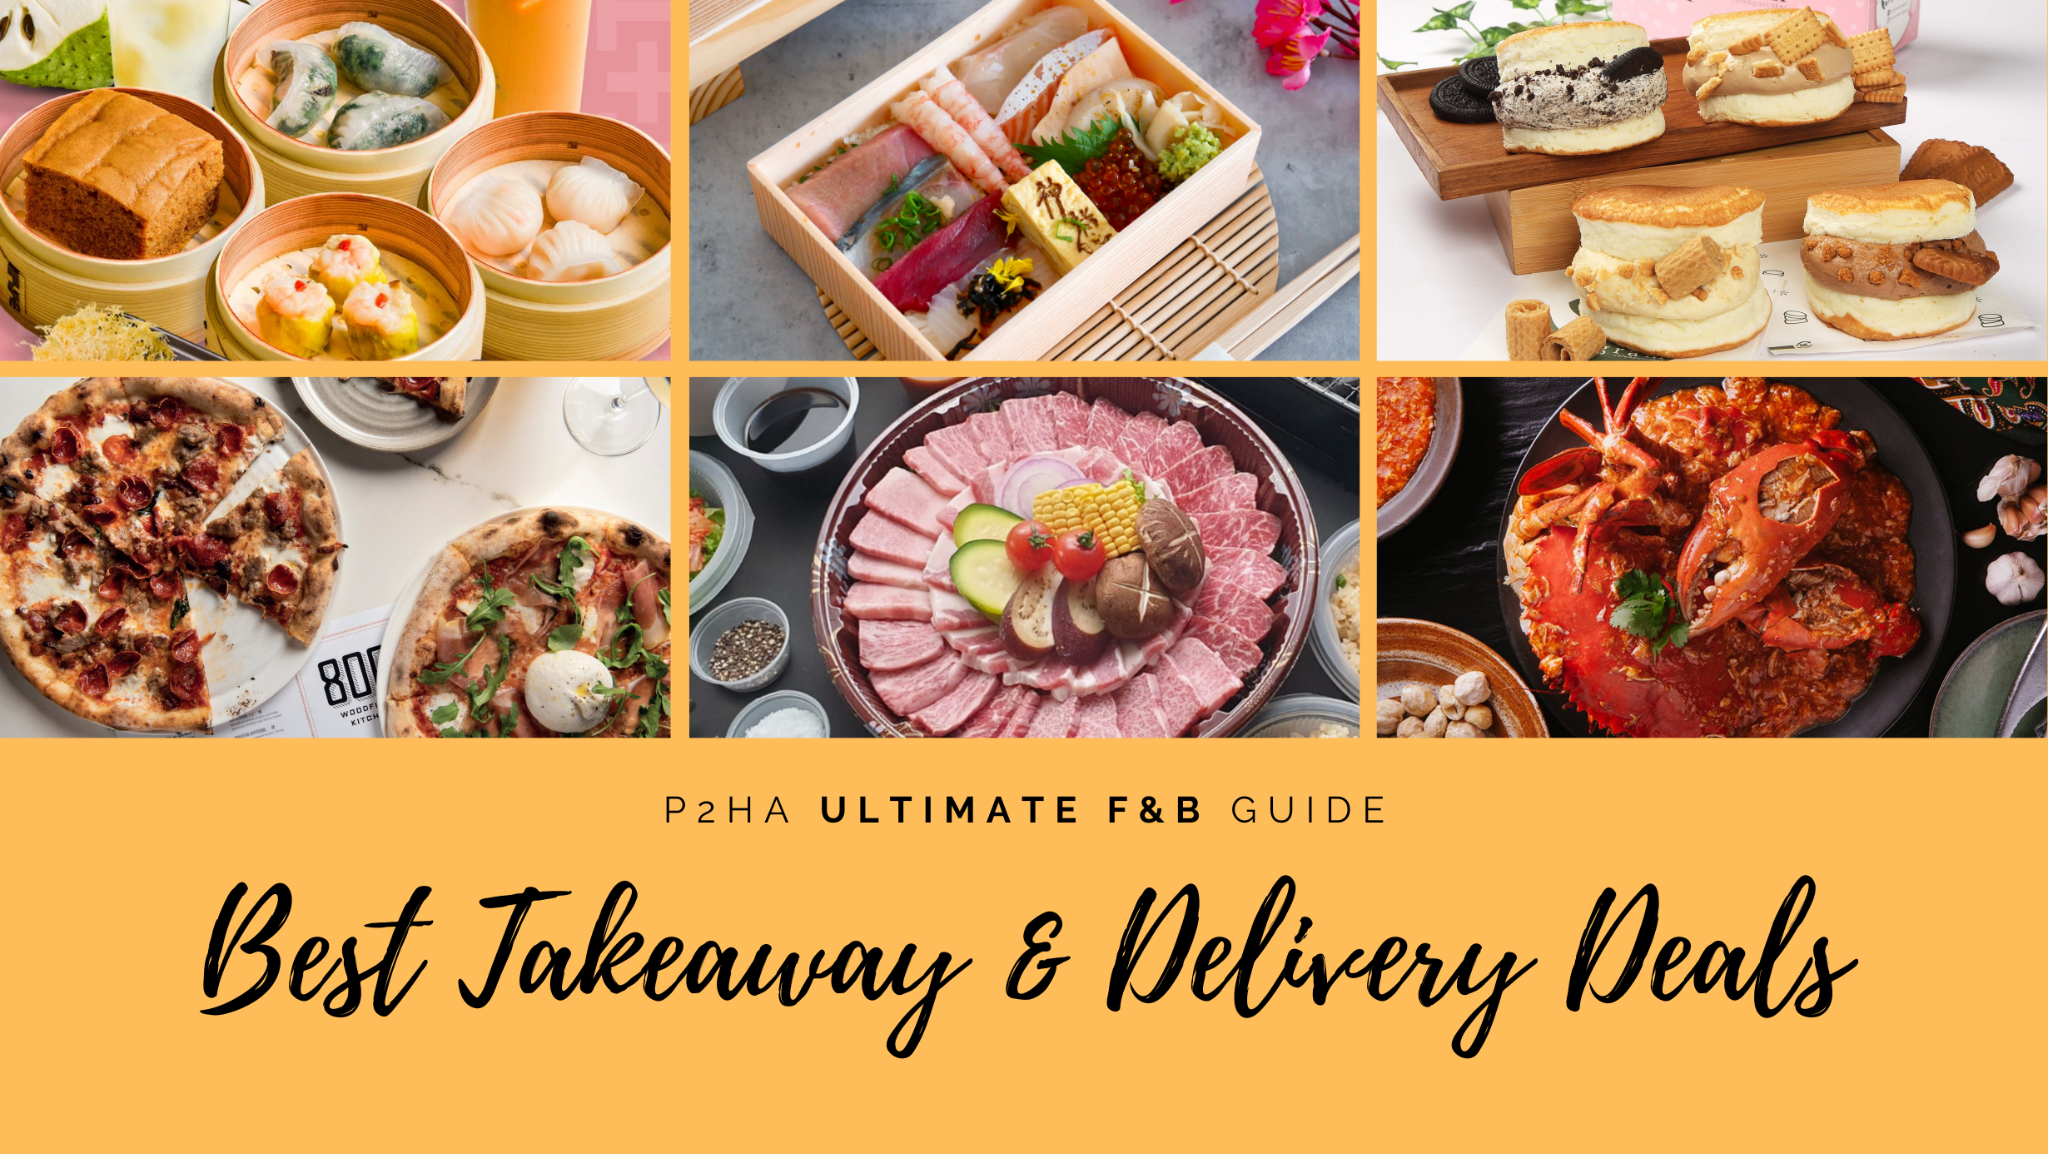 P2HA Ultimate F&B Guide: Best Takeaway & Delivery Deals